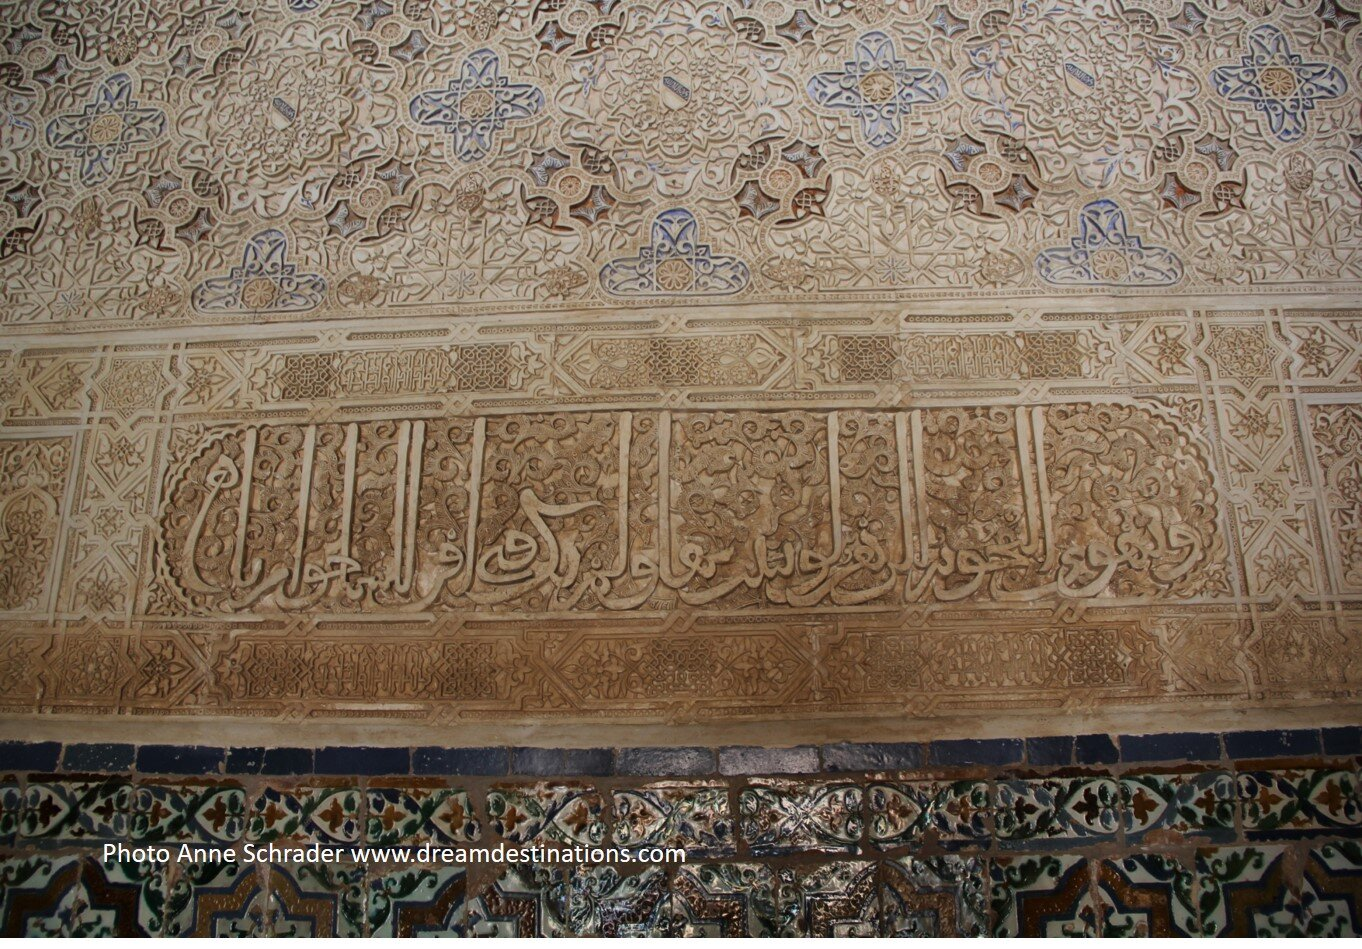 Wall designs on the Nazaries Palace in the Alhambra